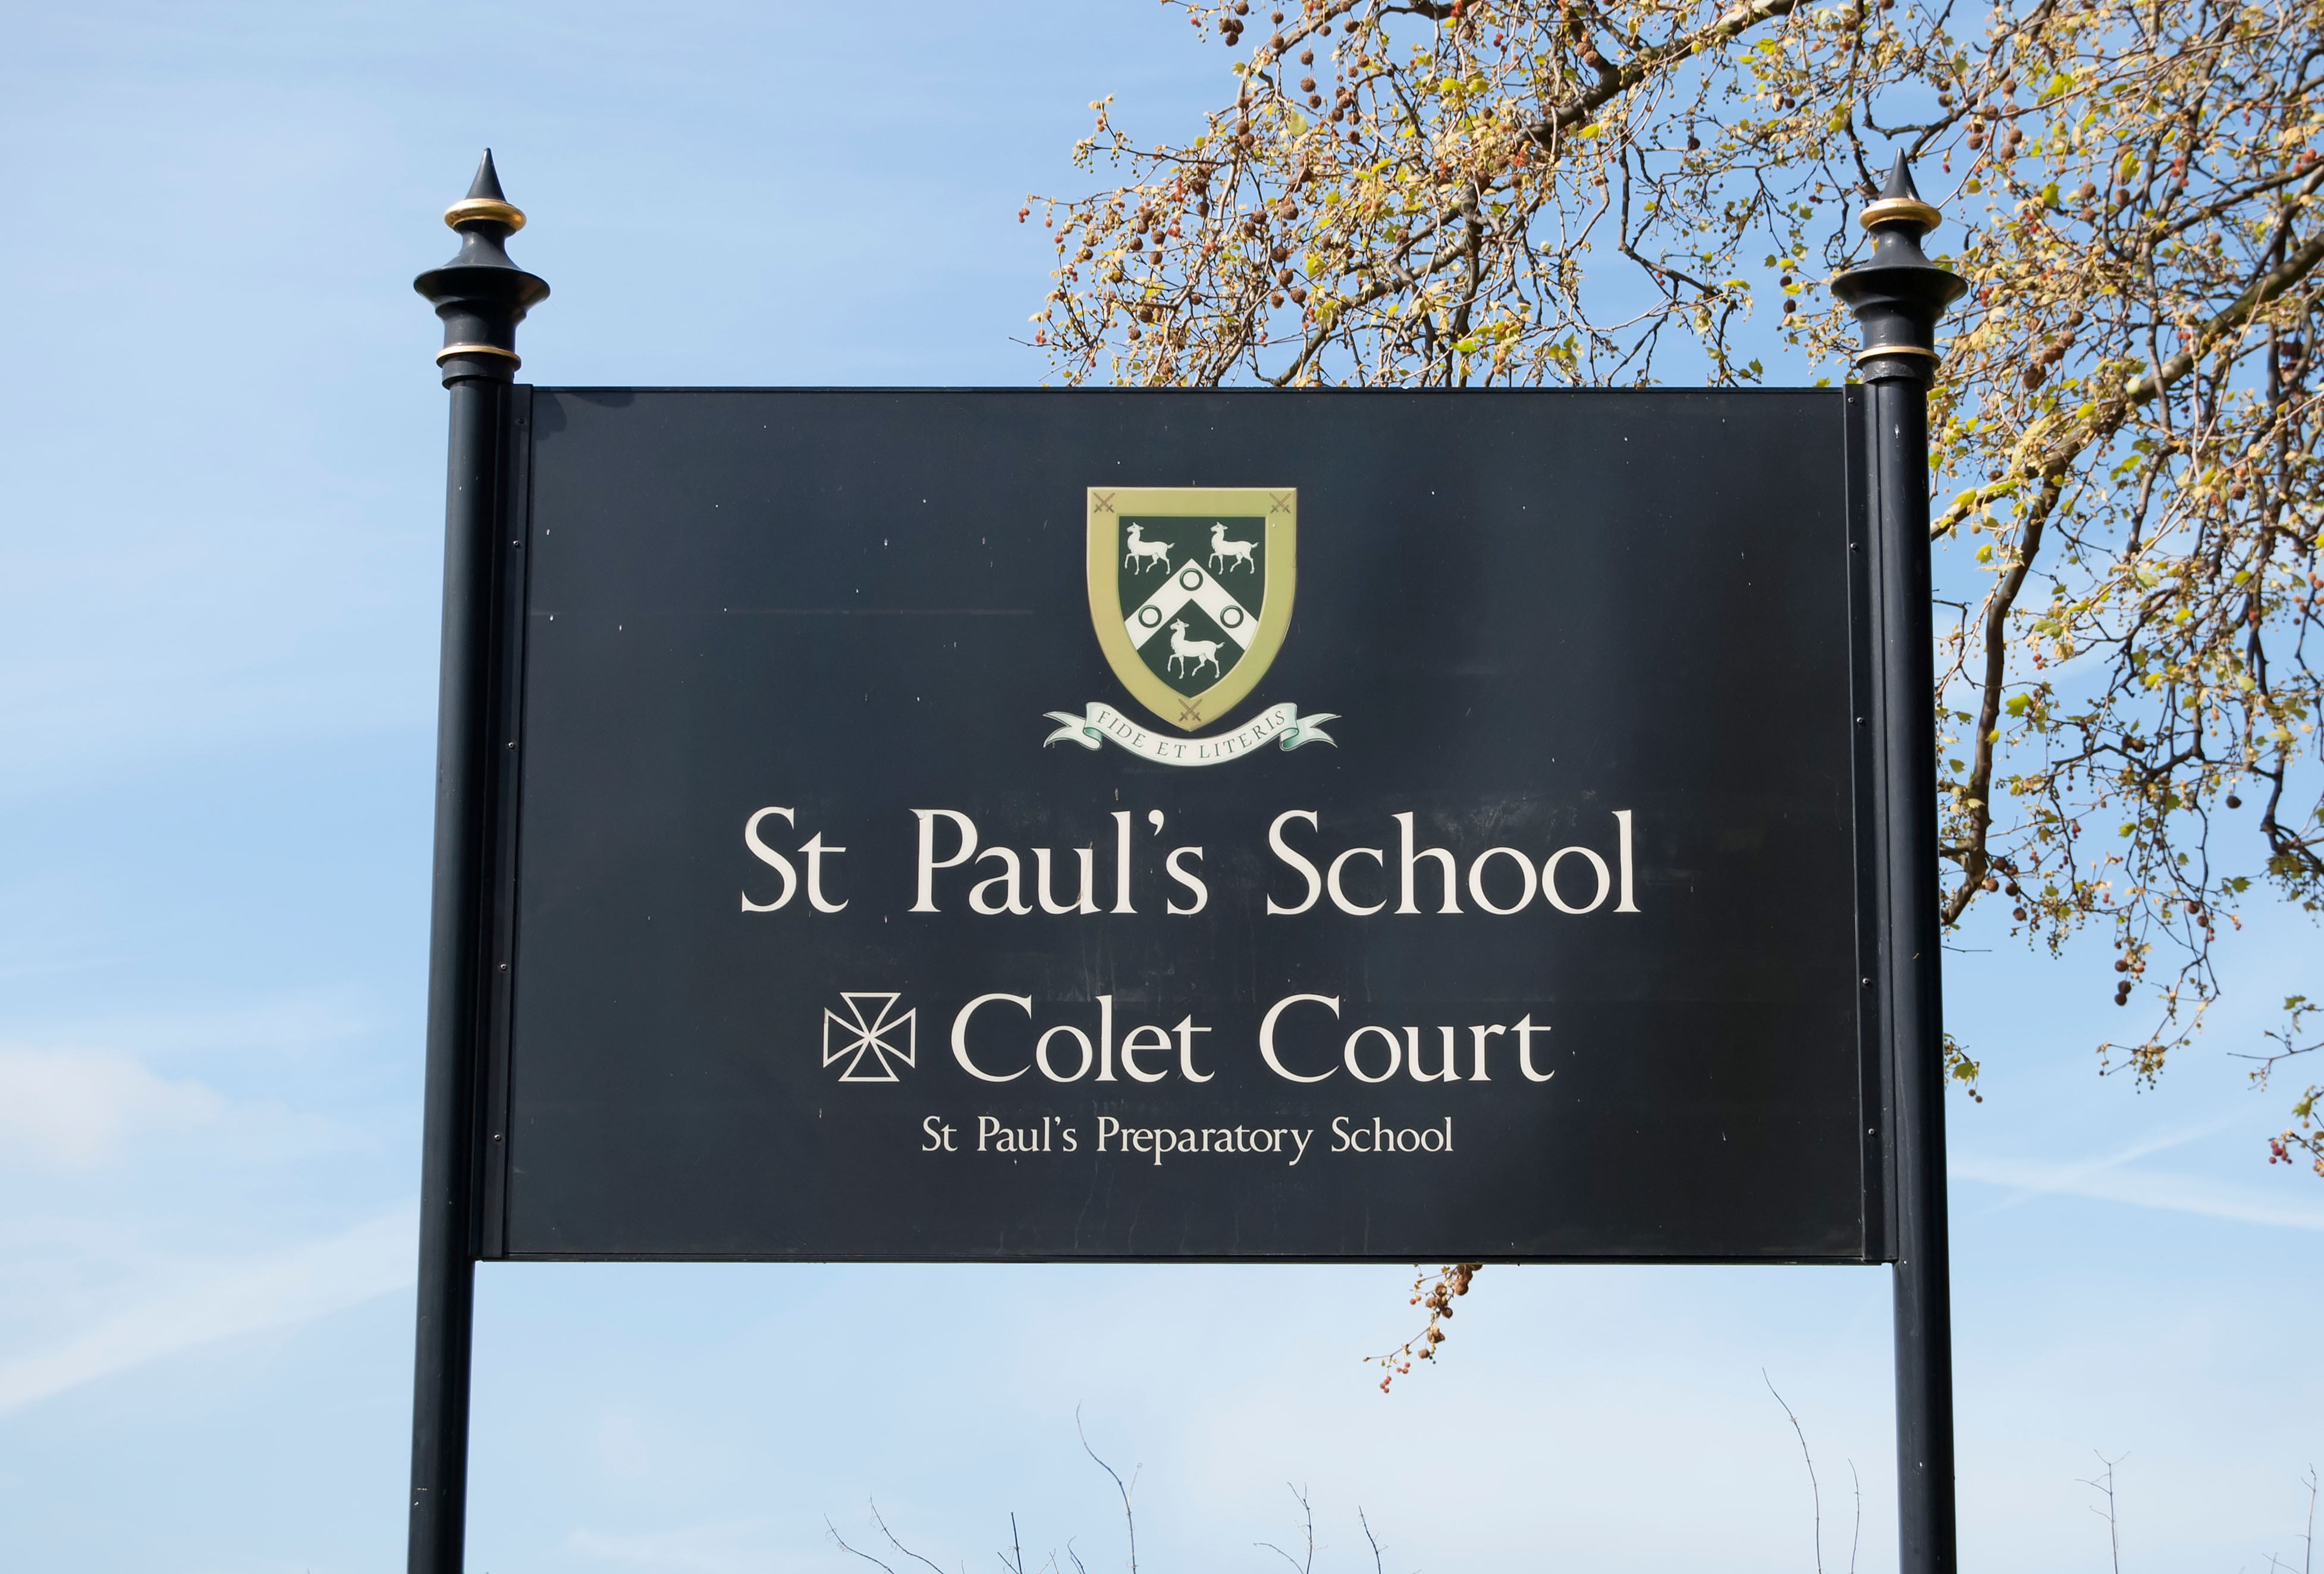 Sign for St Paul's School and Colet Court, Barnes, Southwest London, England